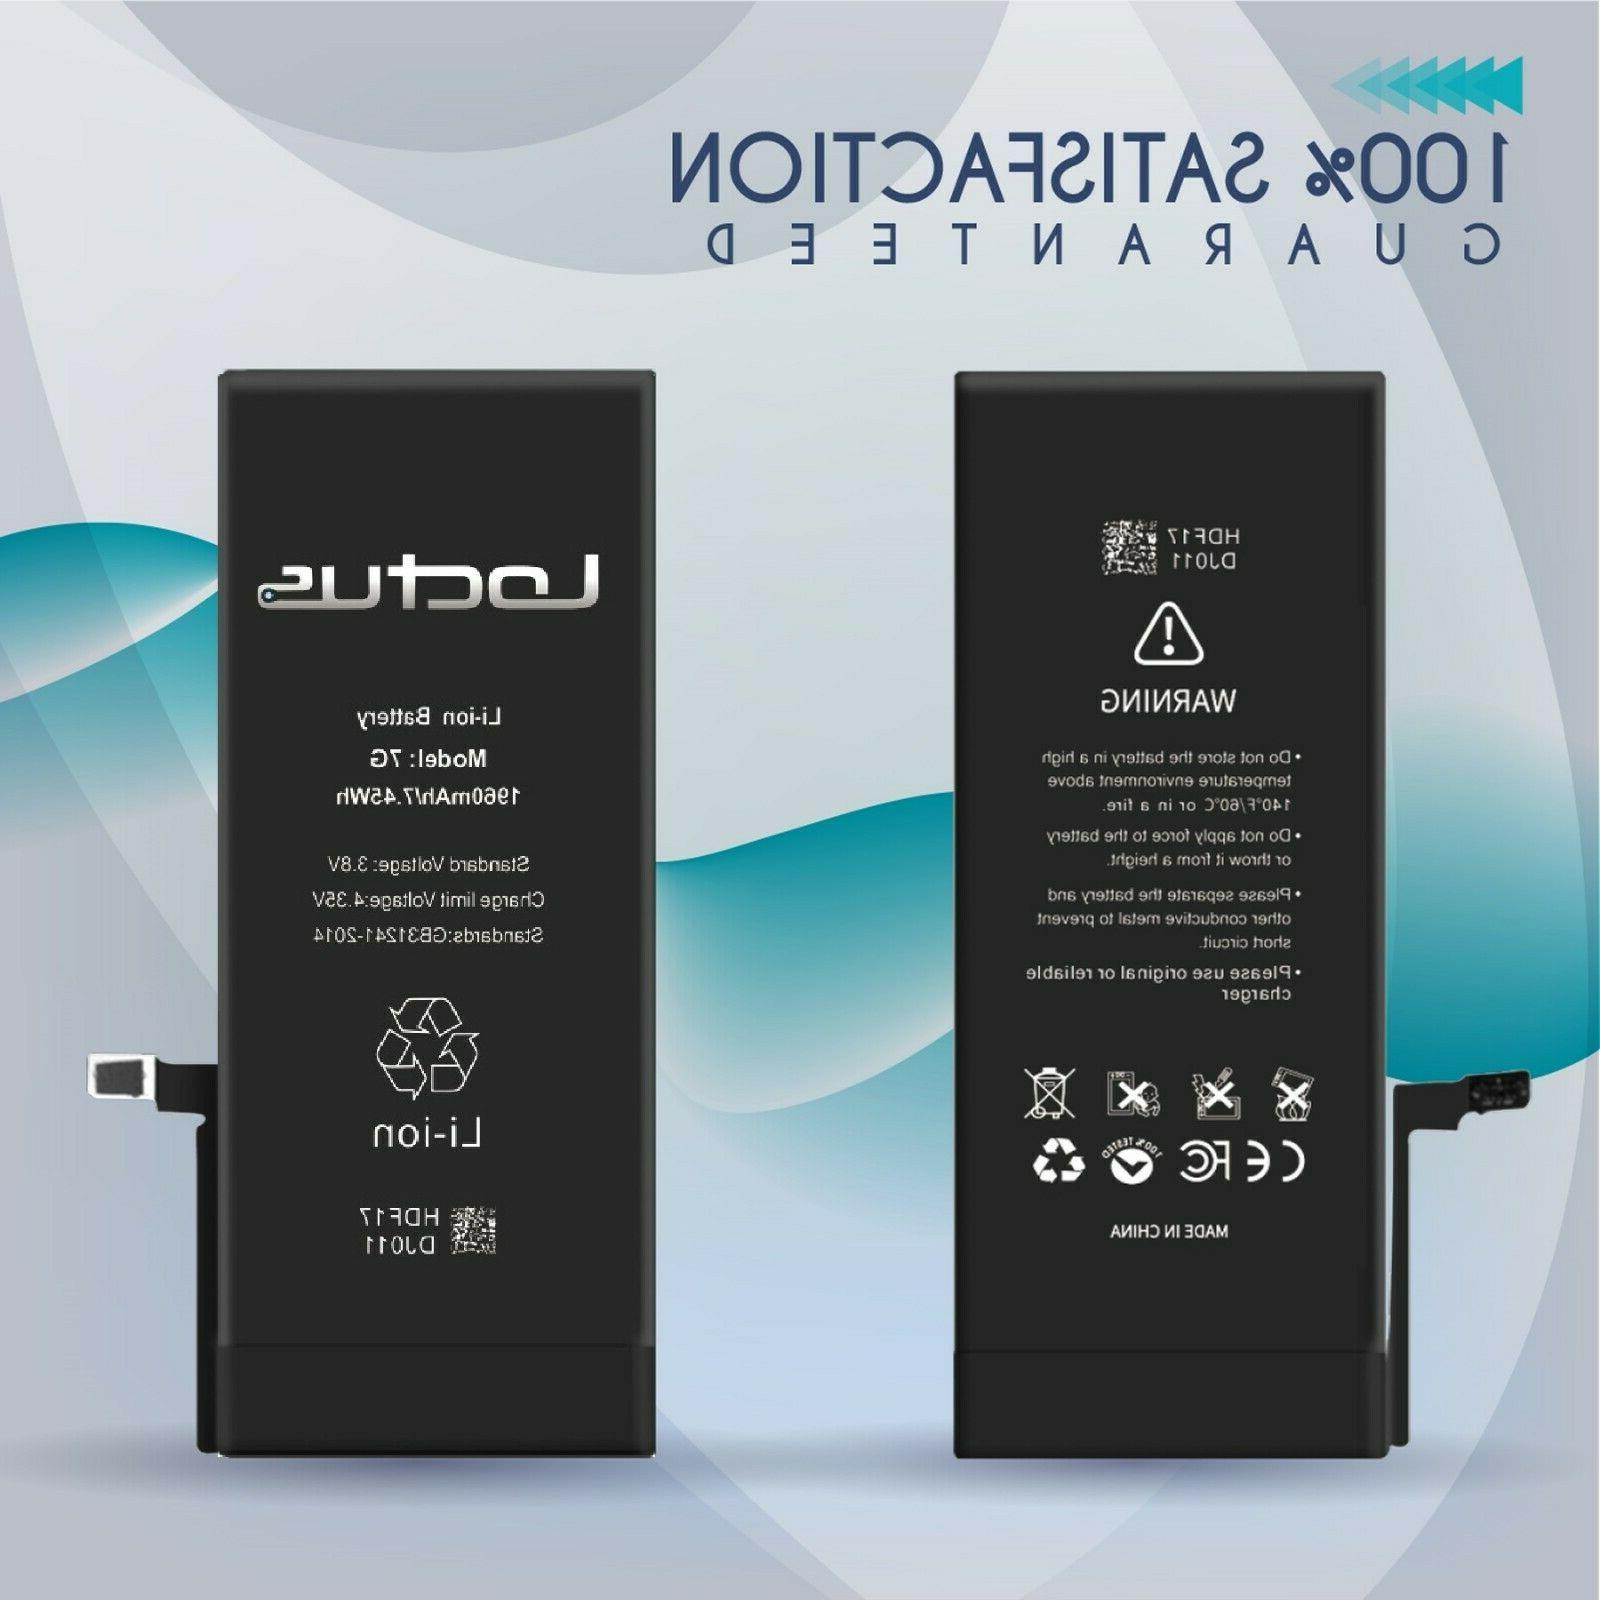 1960mAh Replacement Battery 7 Adhesive 24 Guarantee